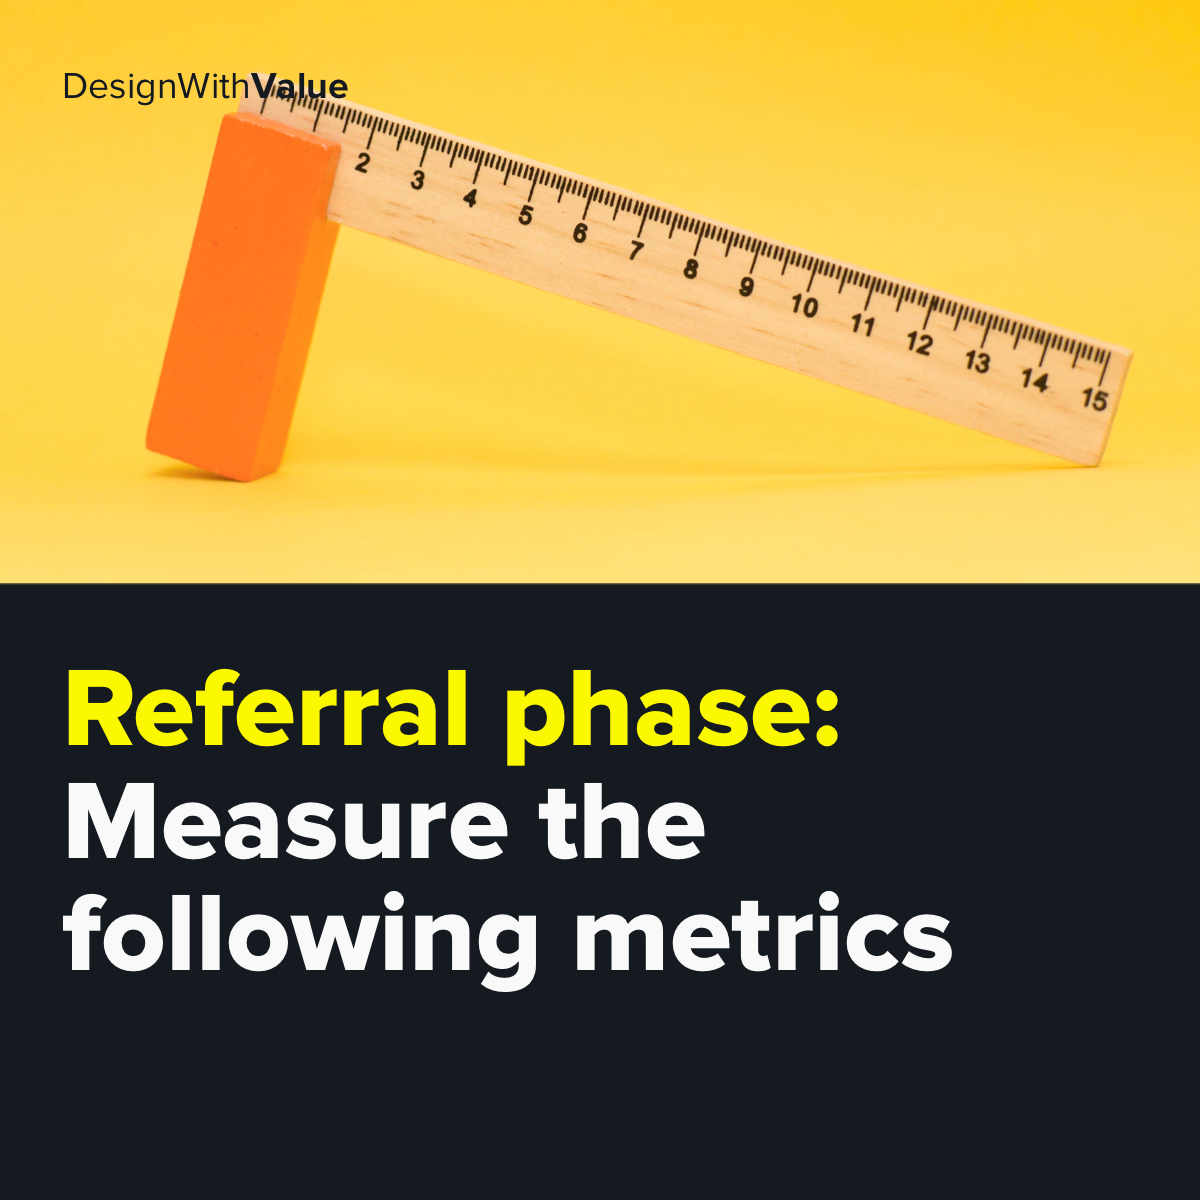 Measure the following metrics in the referral phase.